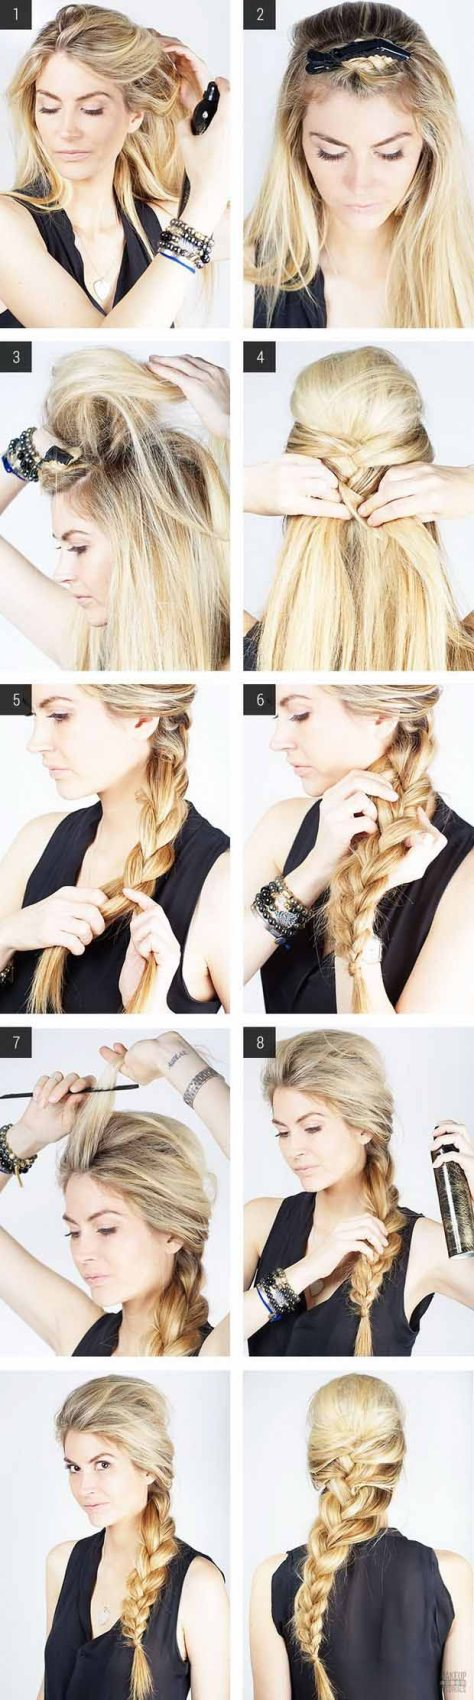 medium hairstyles for work